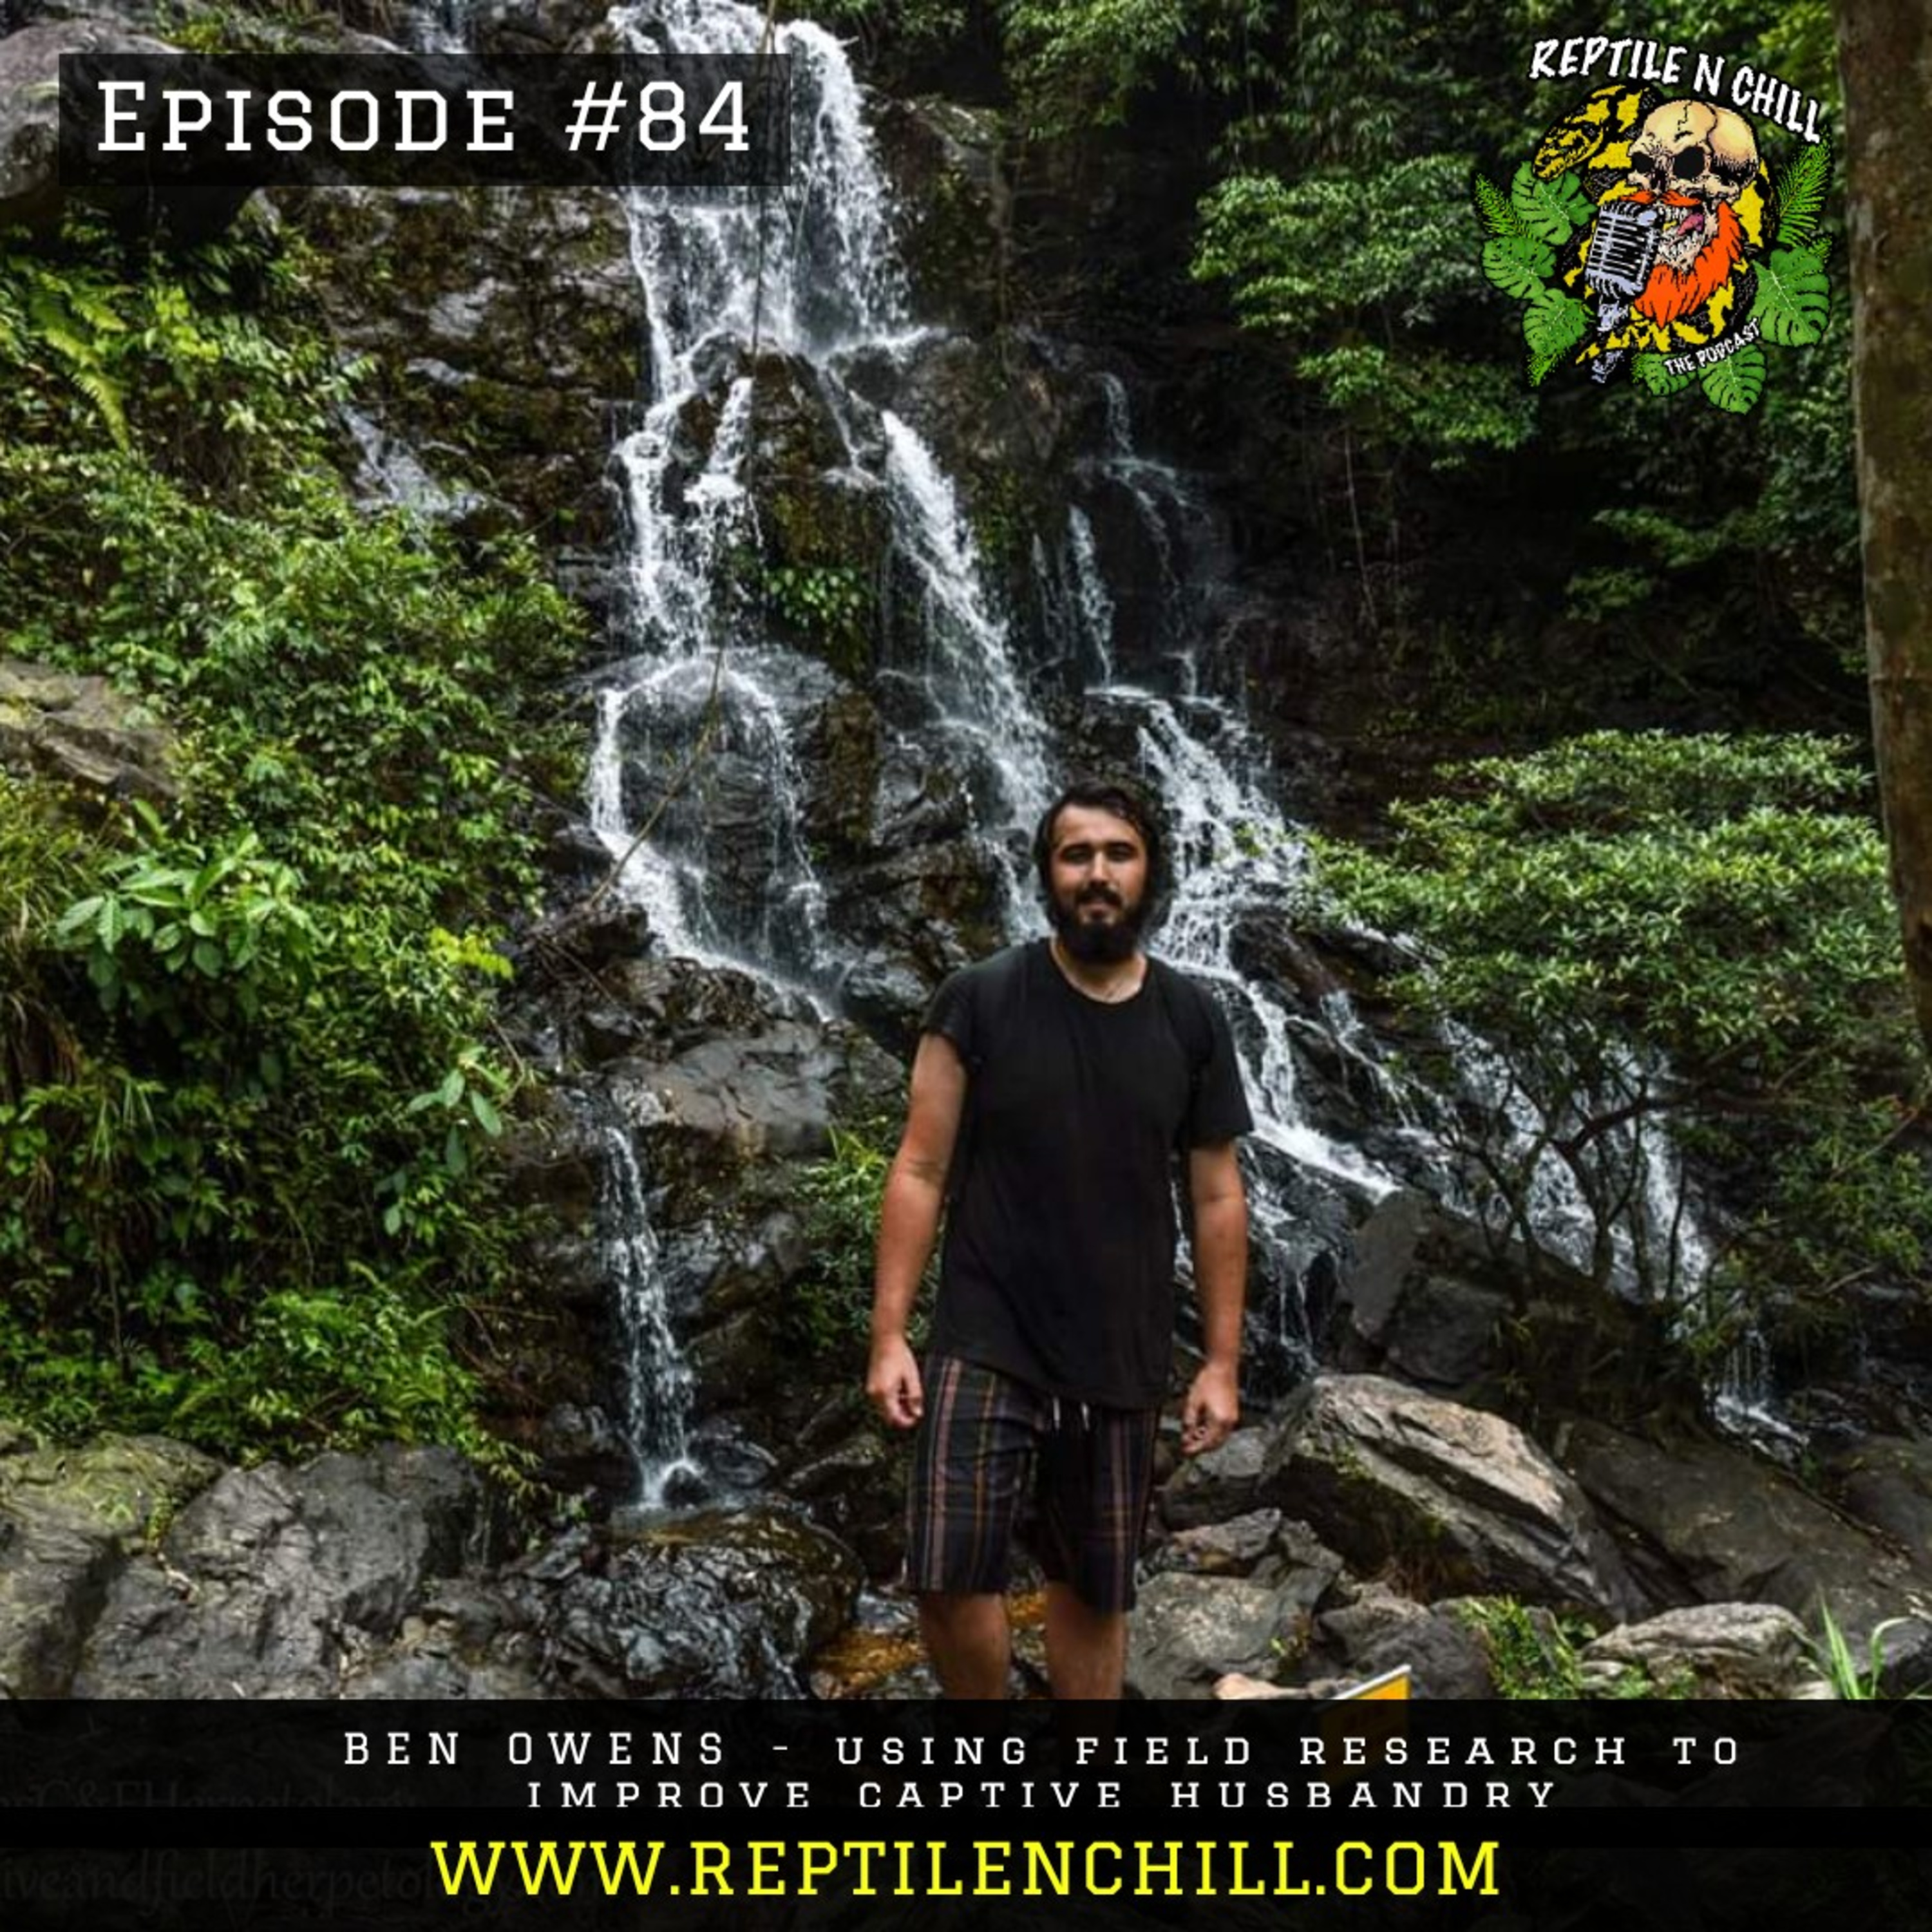 Ben Owens, using field research to better captive husbandry - 84 Reptile n Chill